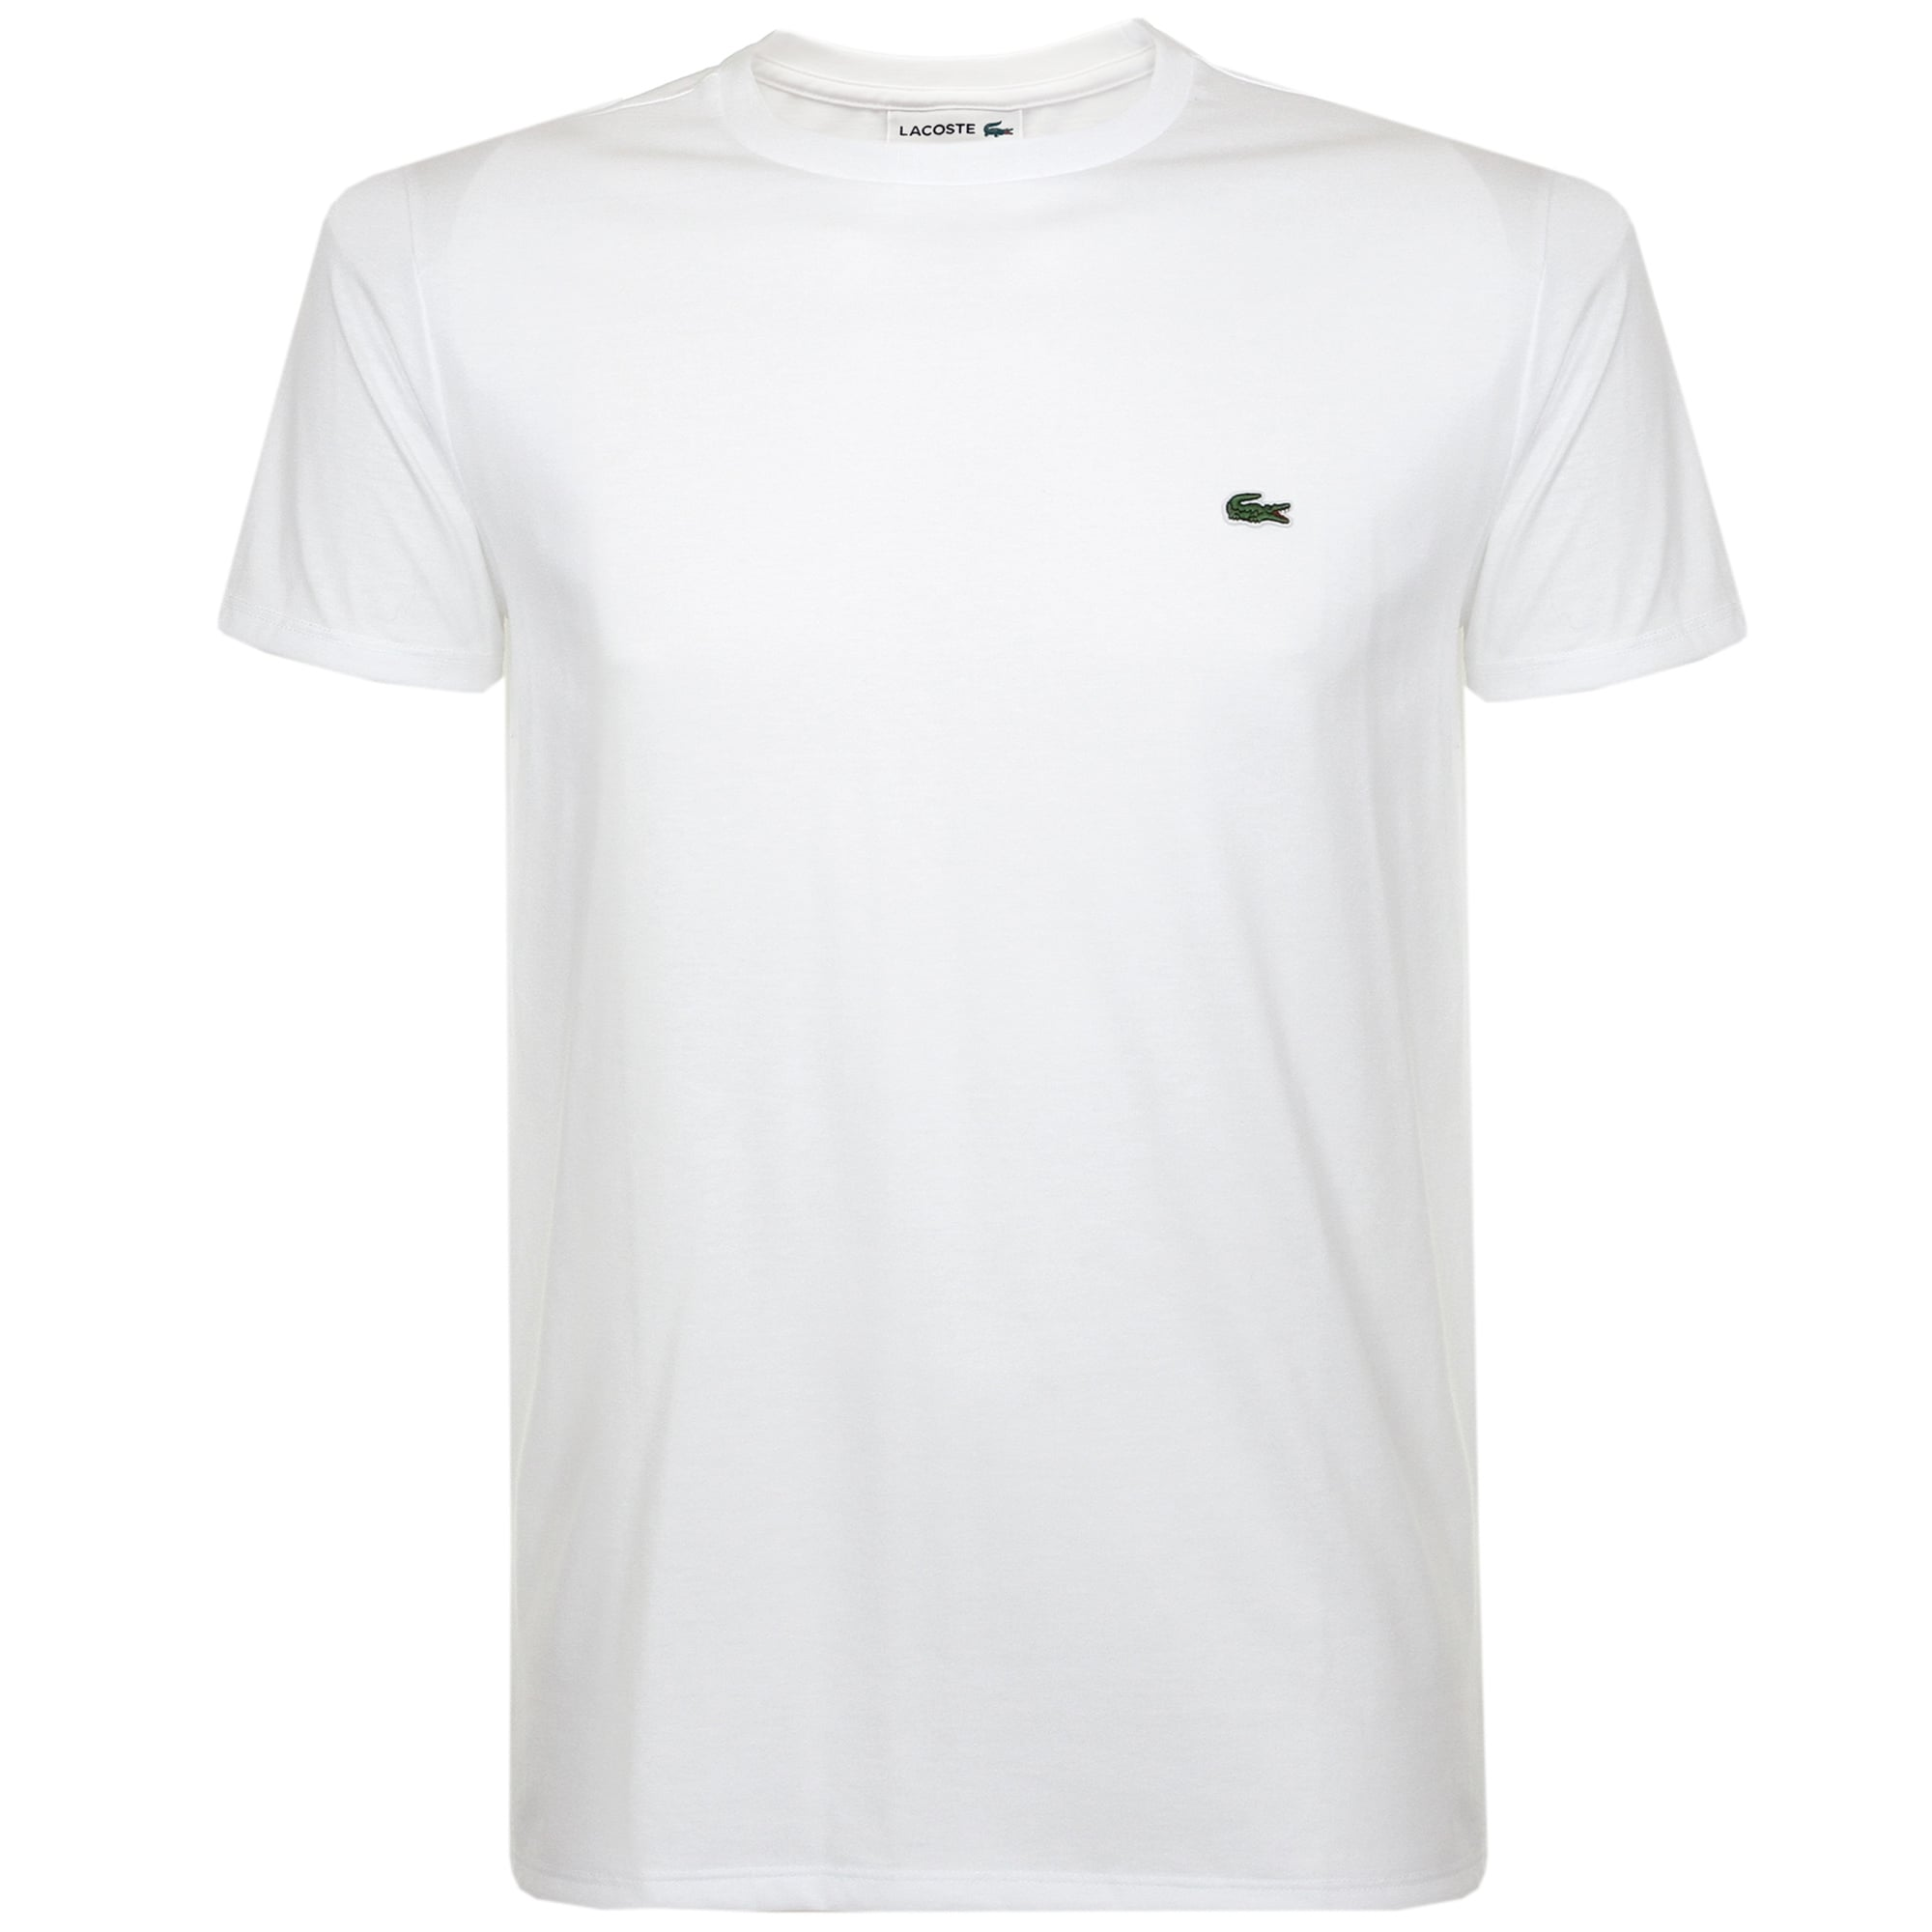 LACOSTE T-SHIRTS lacoste pima cotton white t-shirt th670900001 HCFPBFT